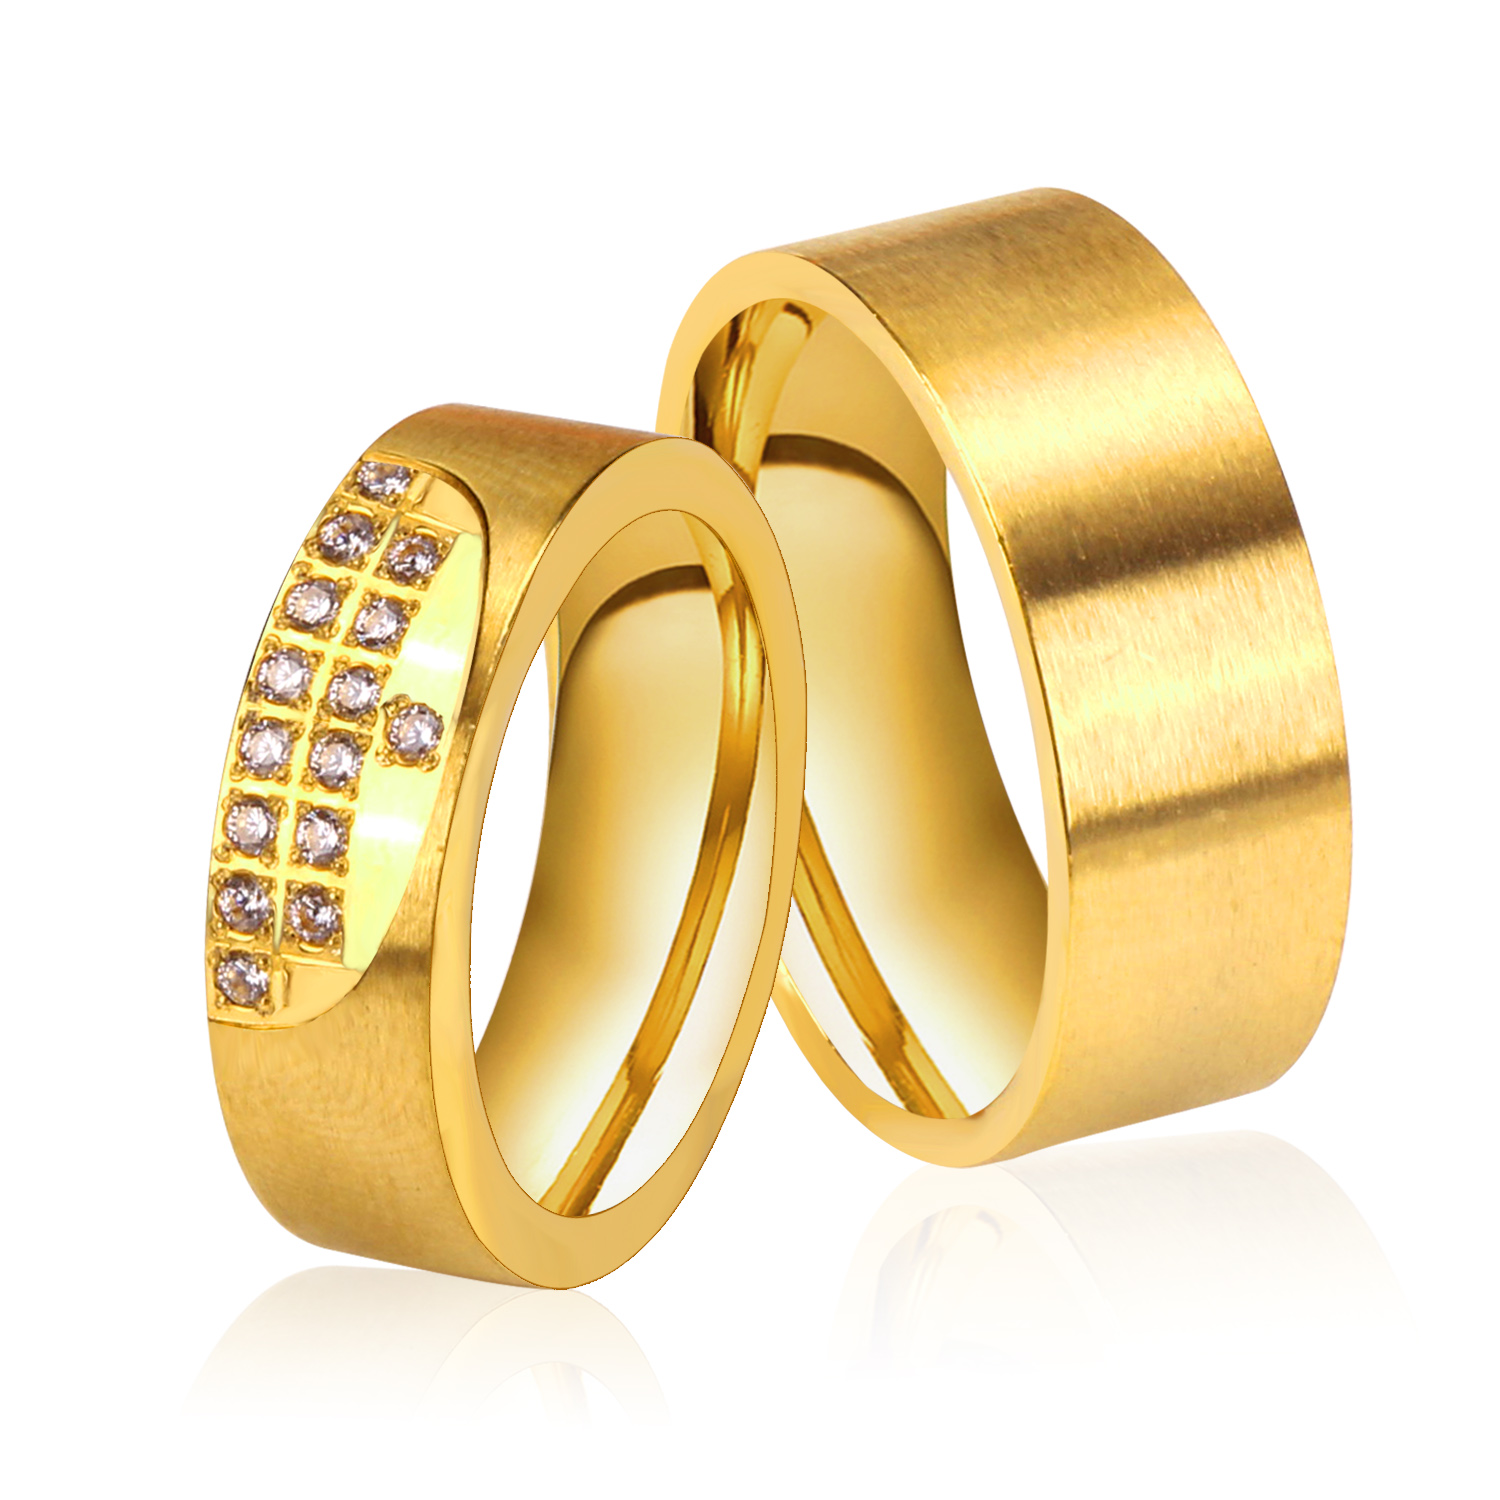 Online New Gold Color Wedding Rings Stainless Steel Pair With Cz Stone 2017 Fashion Aliexpress Mobile